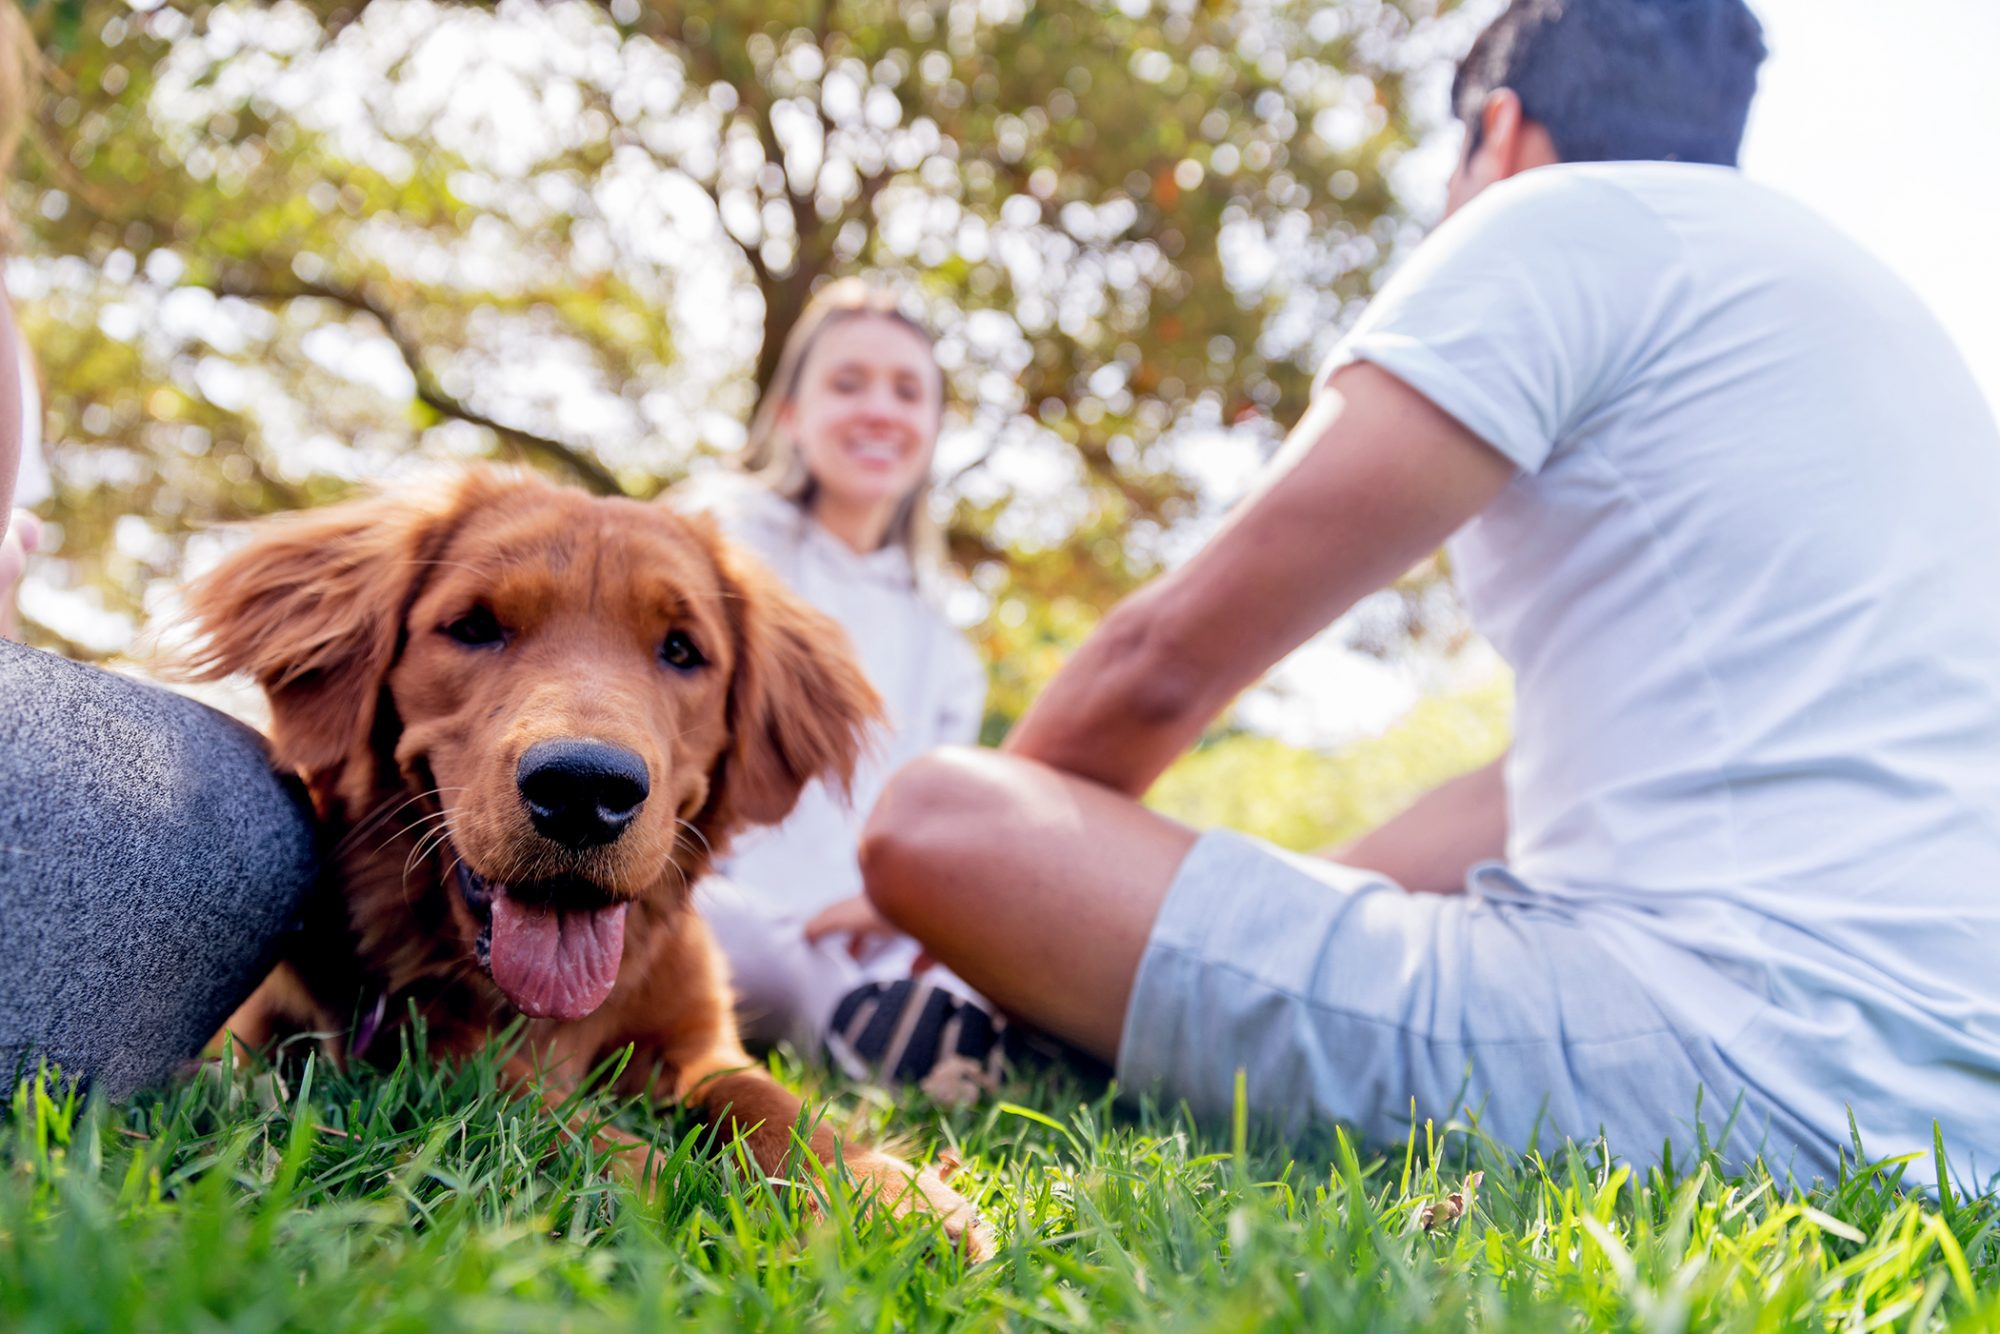 red dog sitting in grass with owners at the park